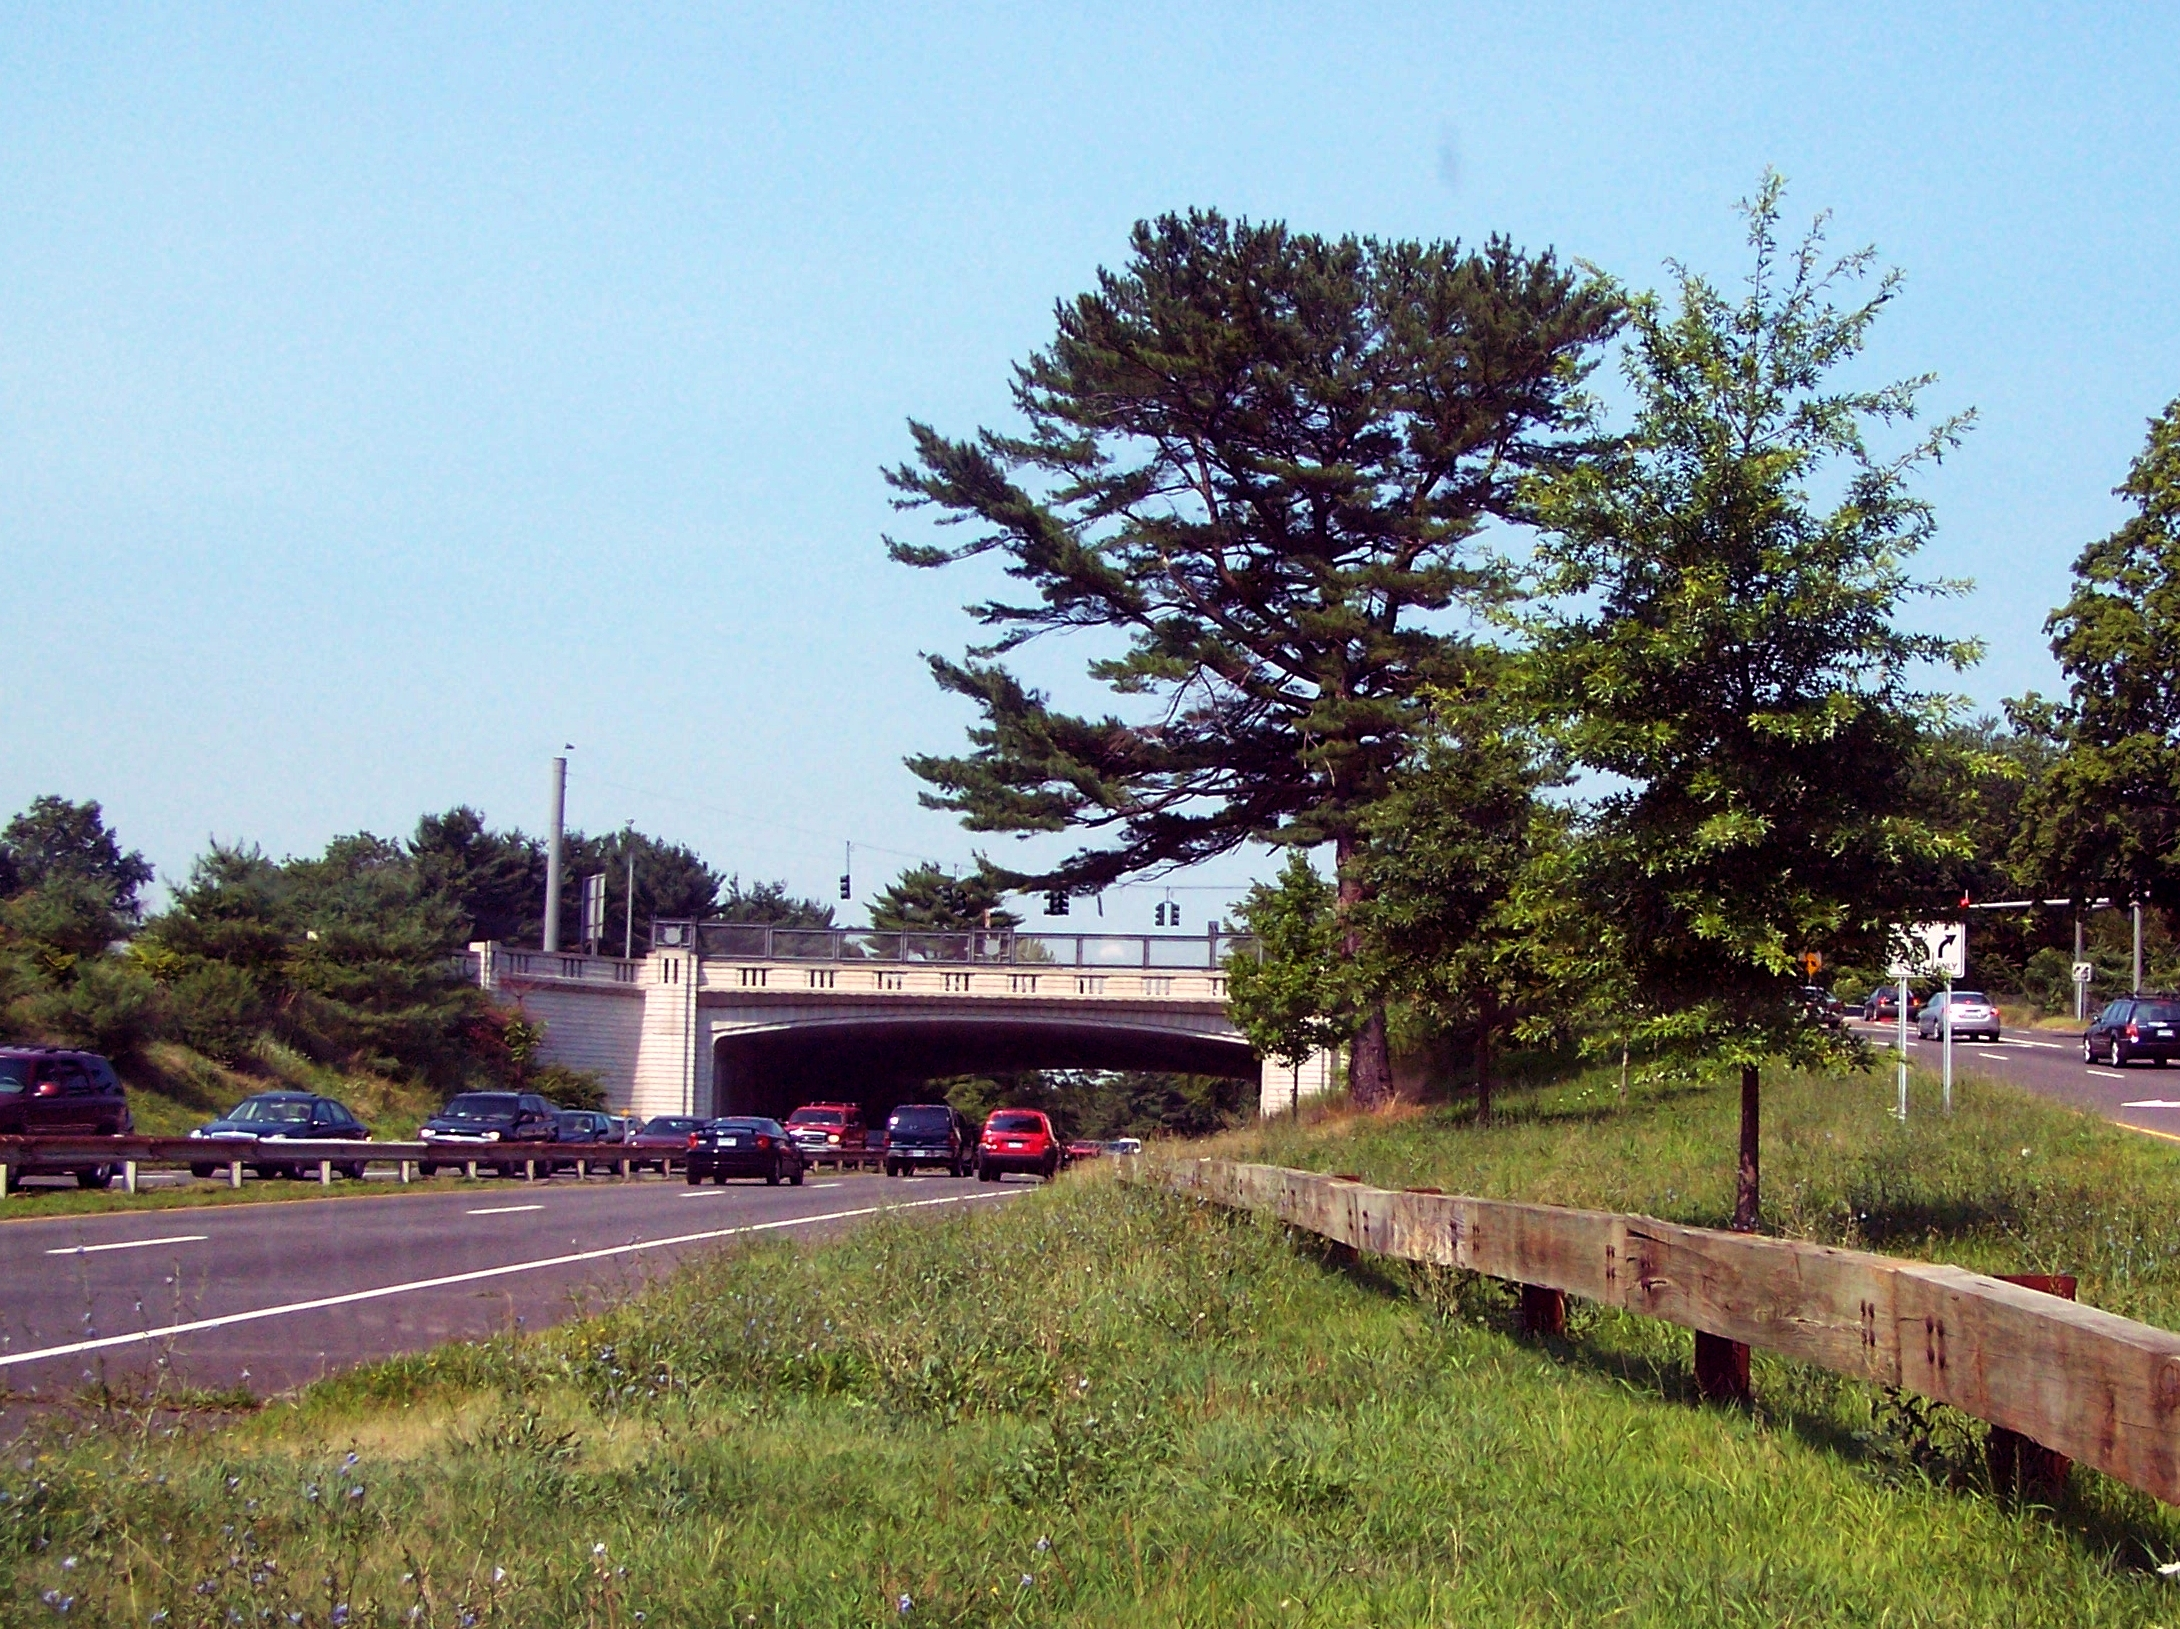 Merritt Parkway Bridge and Landscape